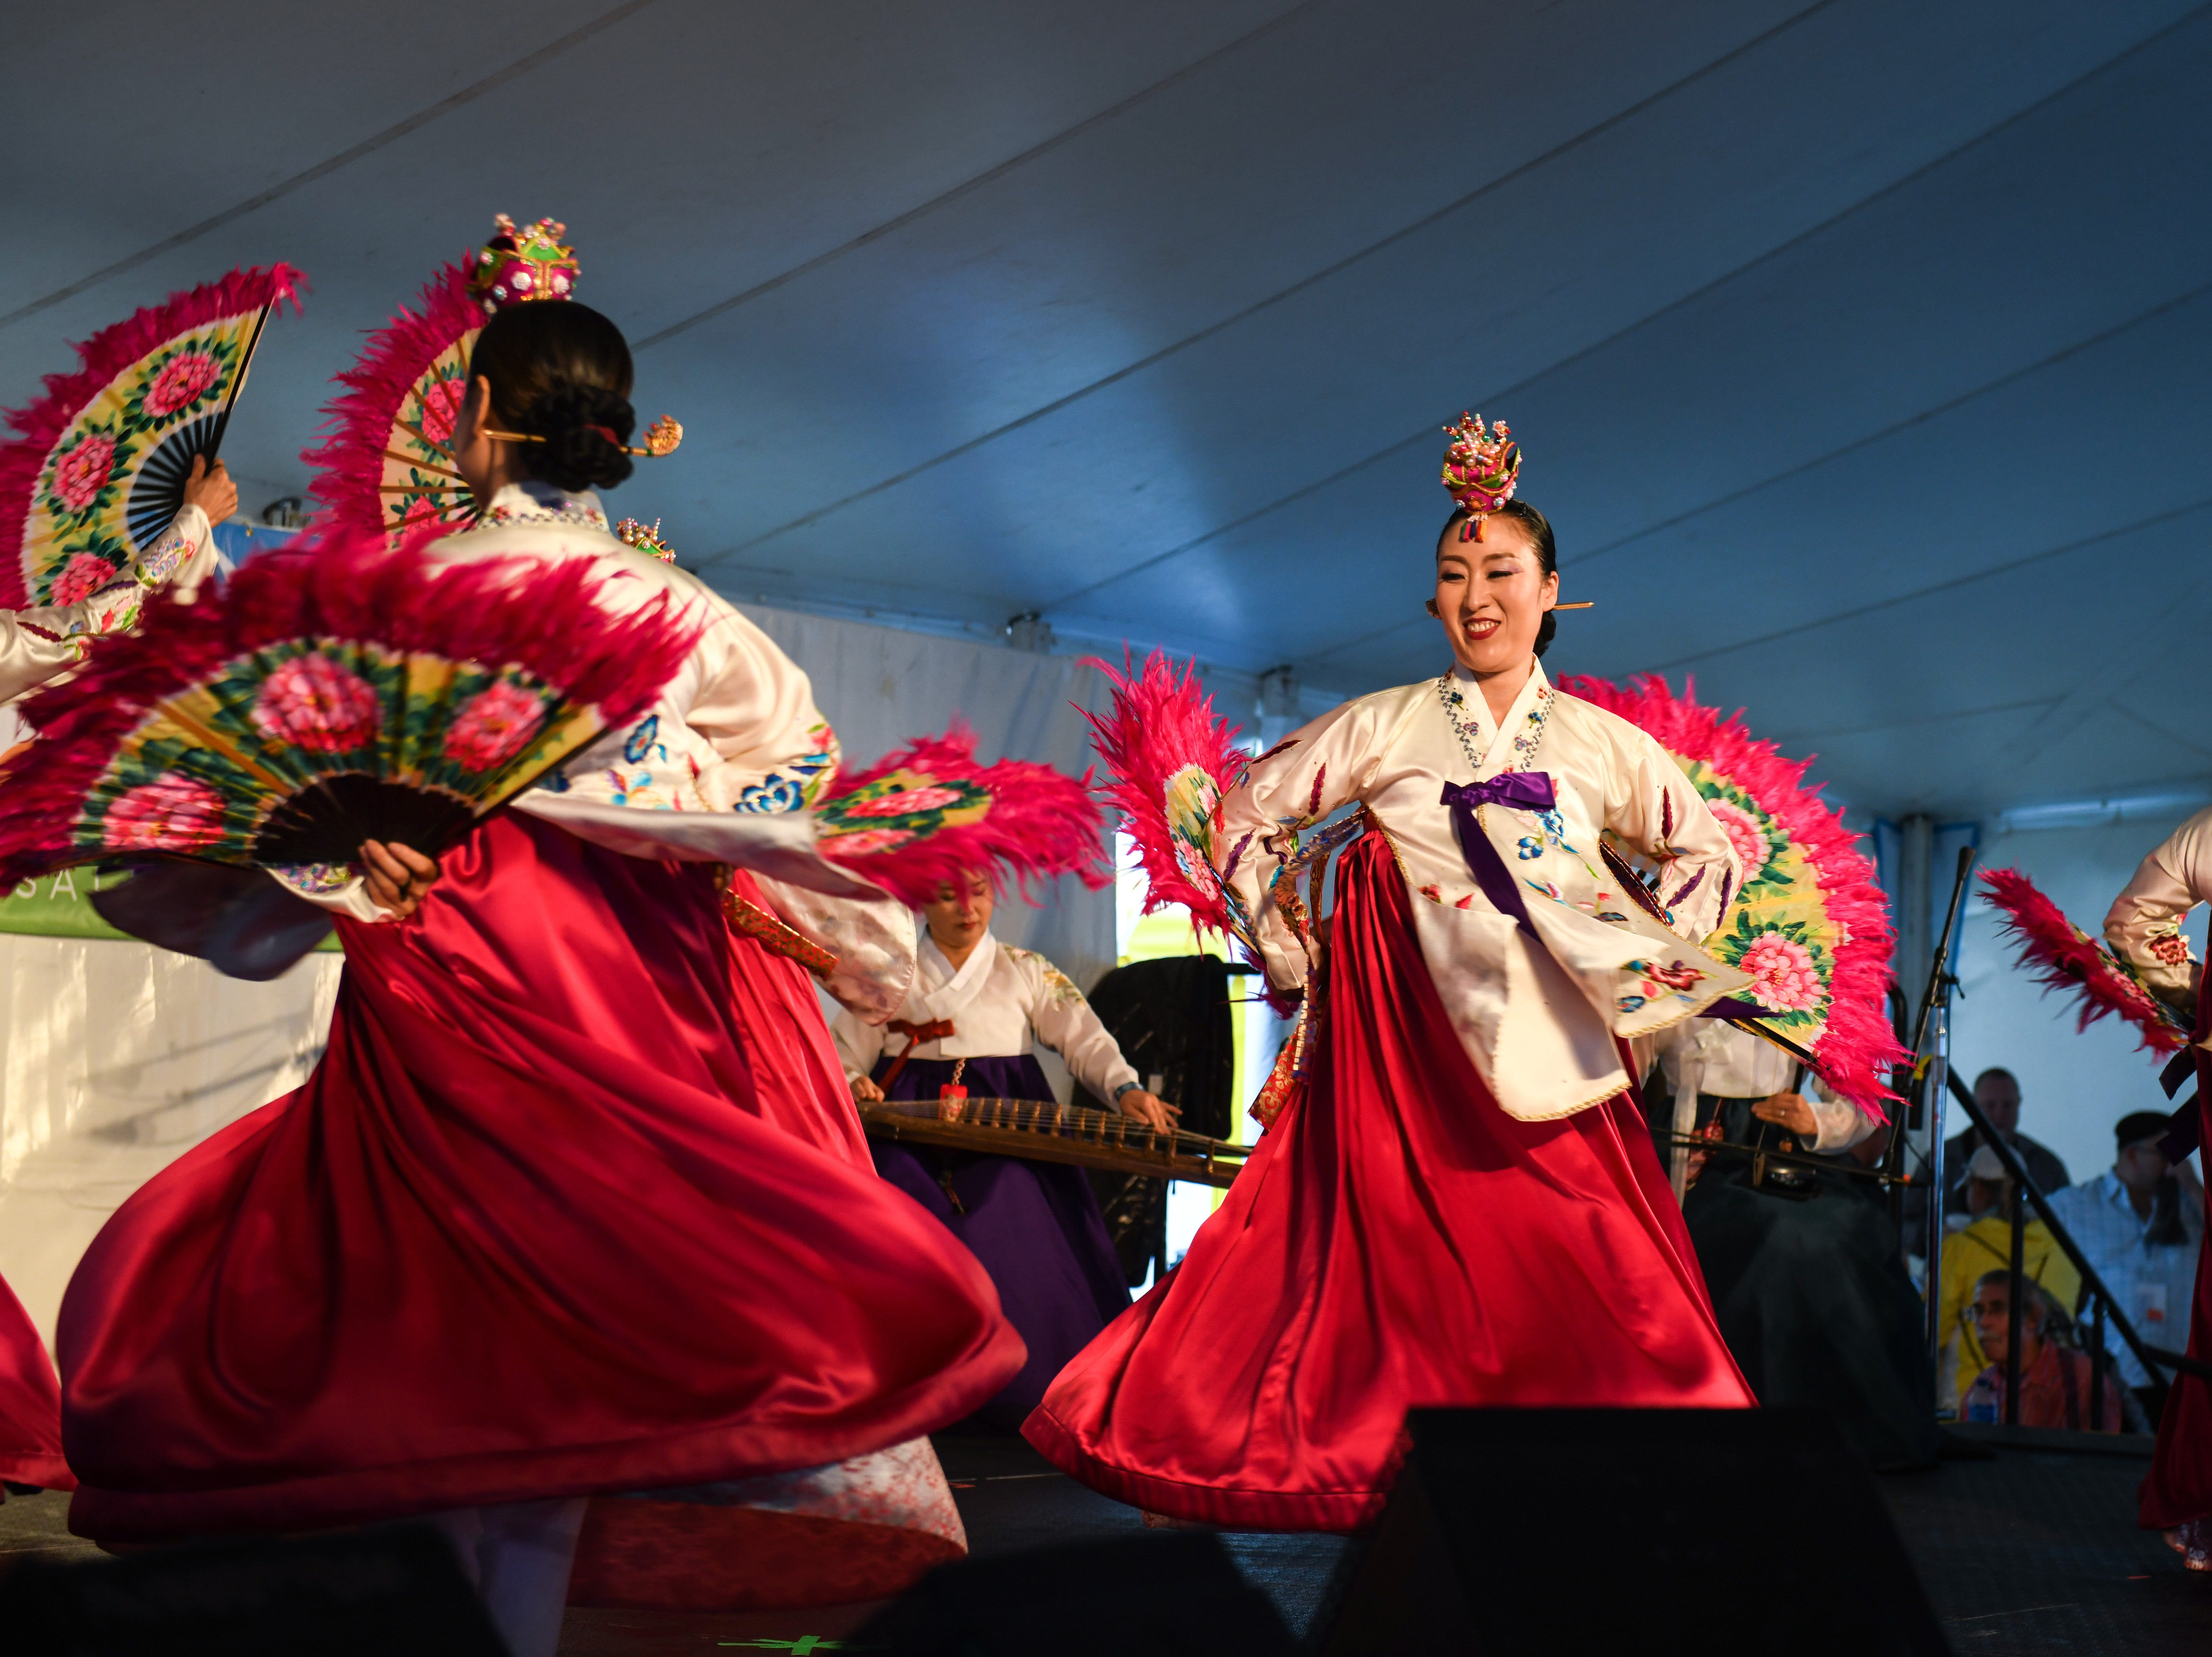 Sounds of Korea perform at the National Folk Festival in Salisbury on Sunday, Sept. 9.